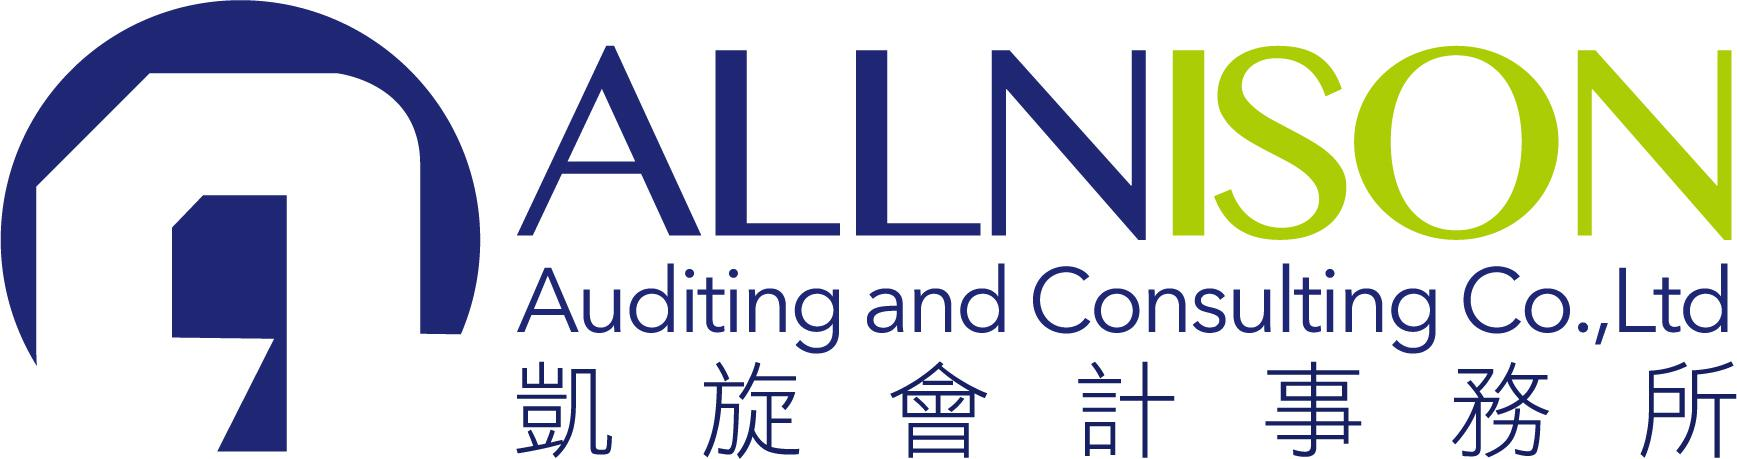 ALLNISON Auditing and Consulting Co., Ltd Logo